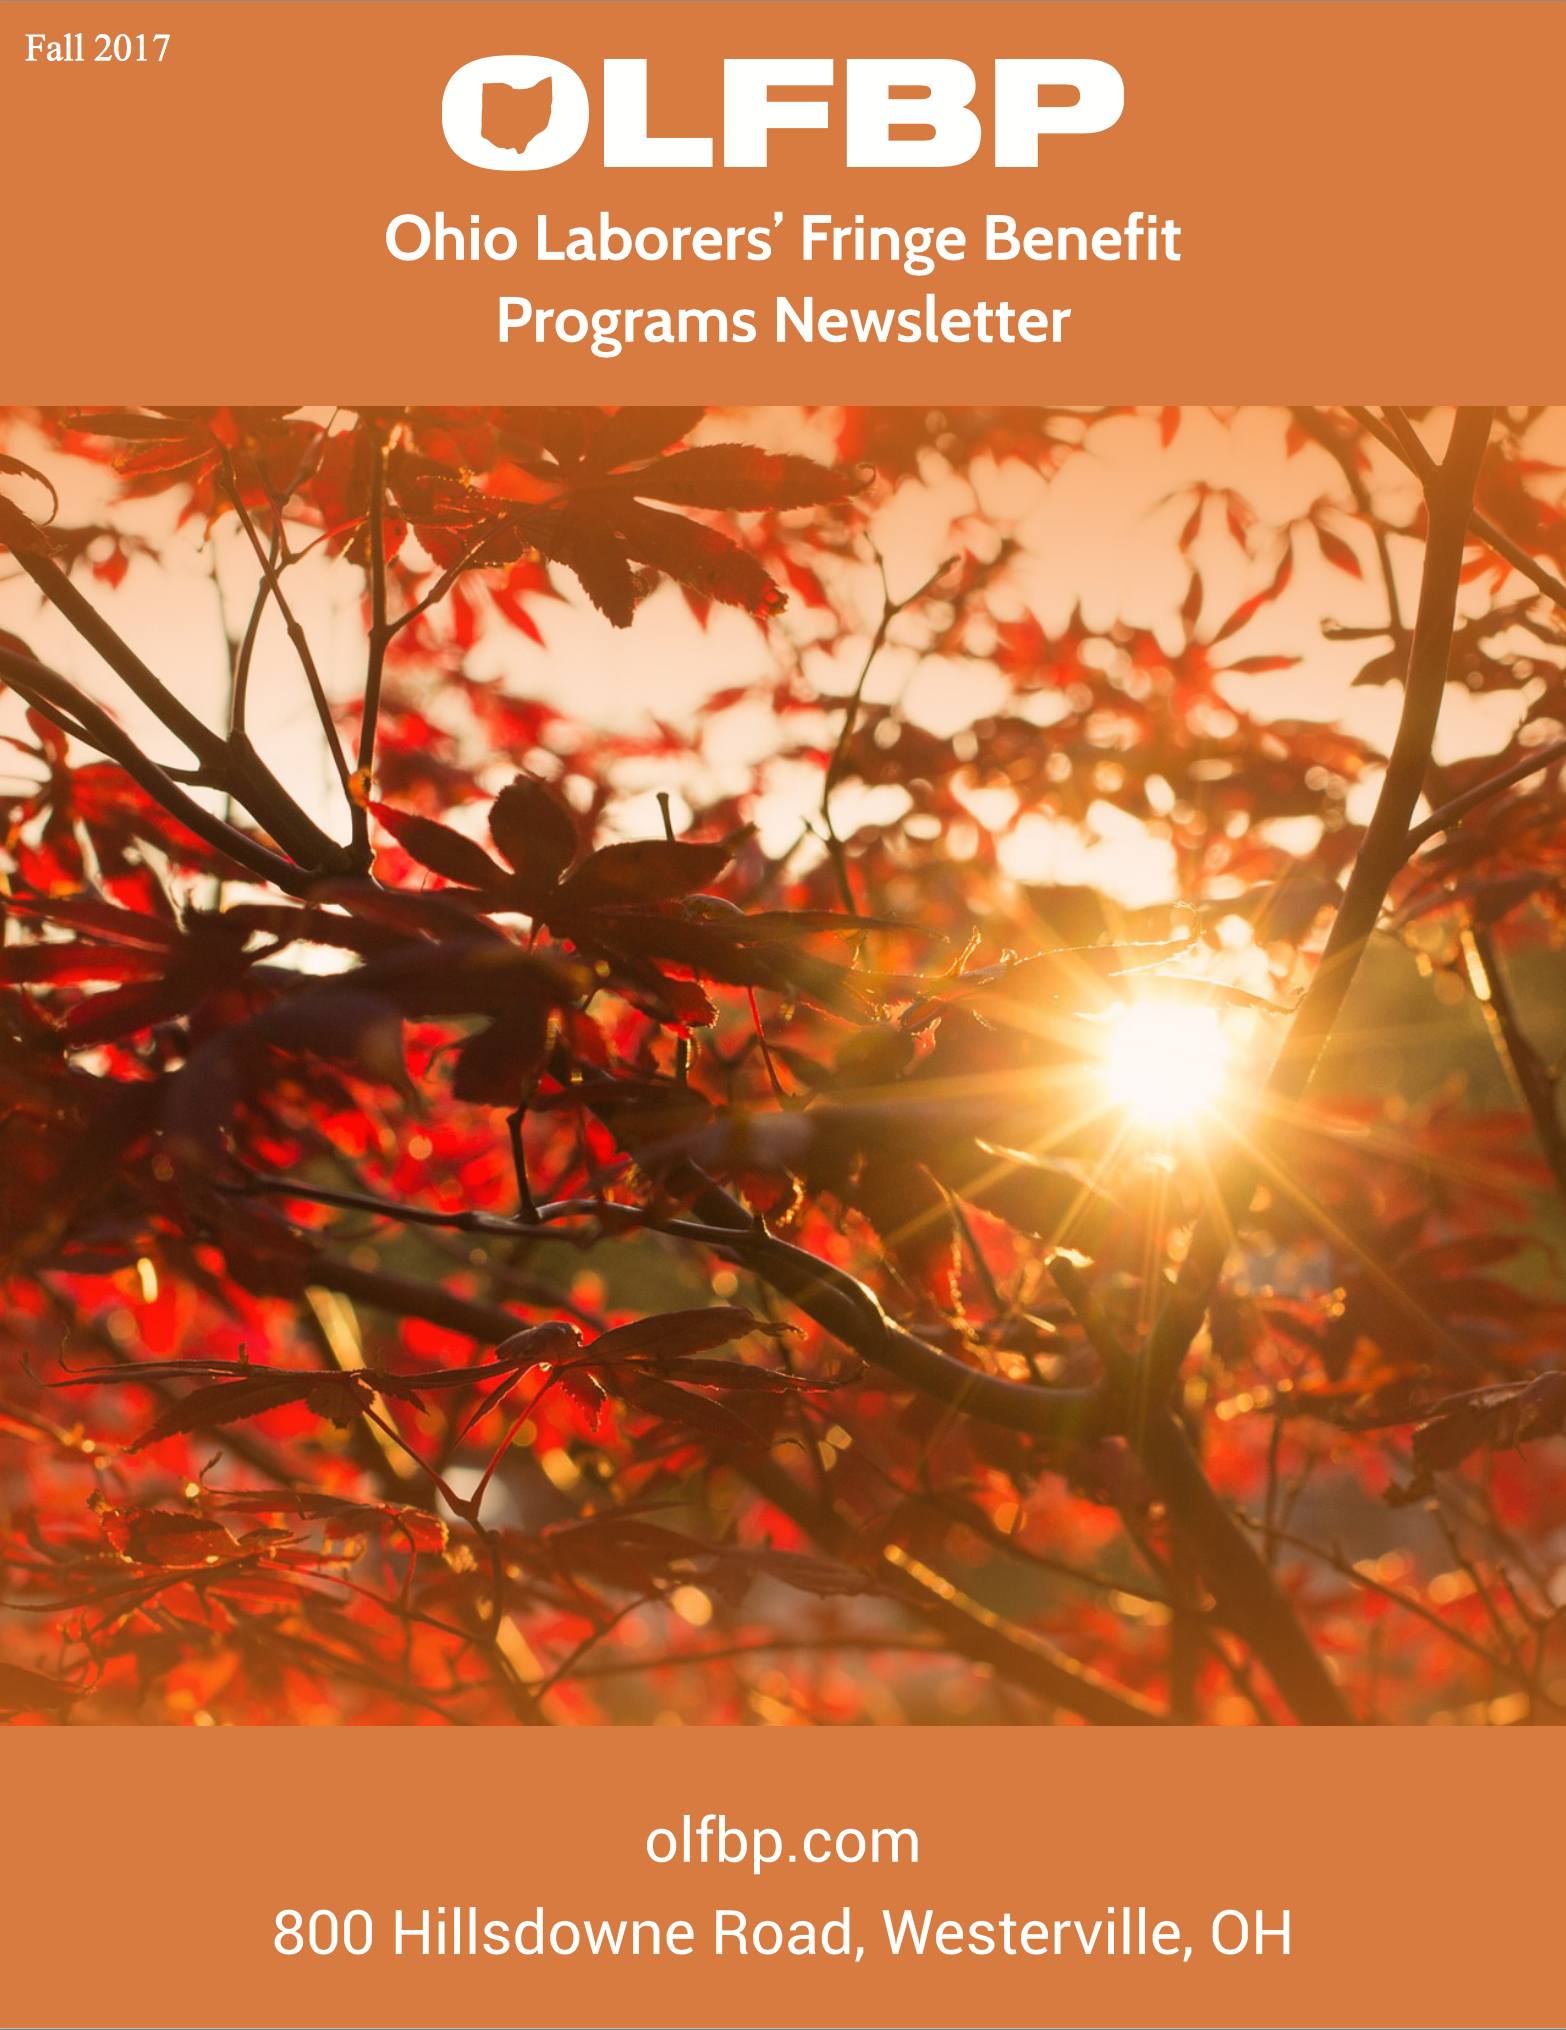 Fall 2017 newsletter cover